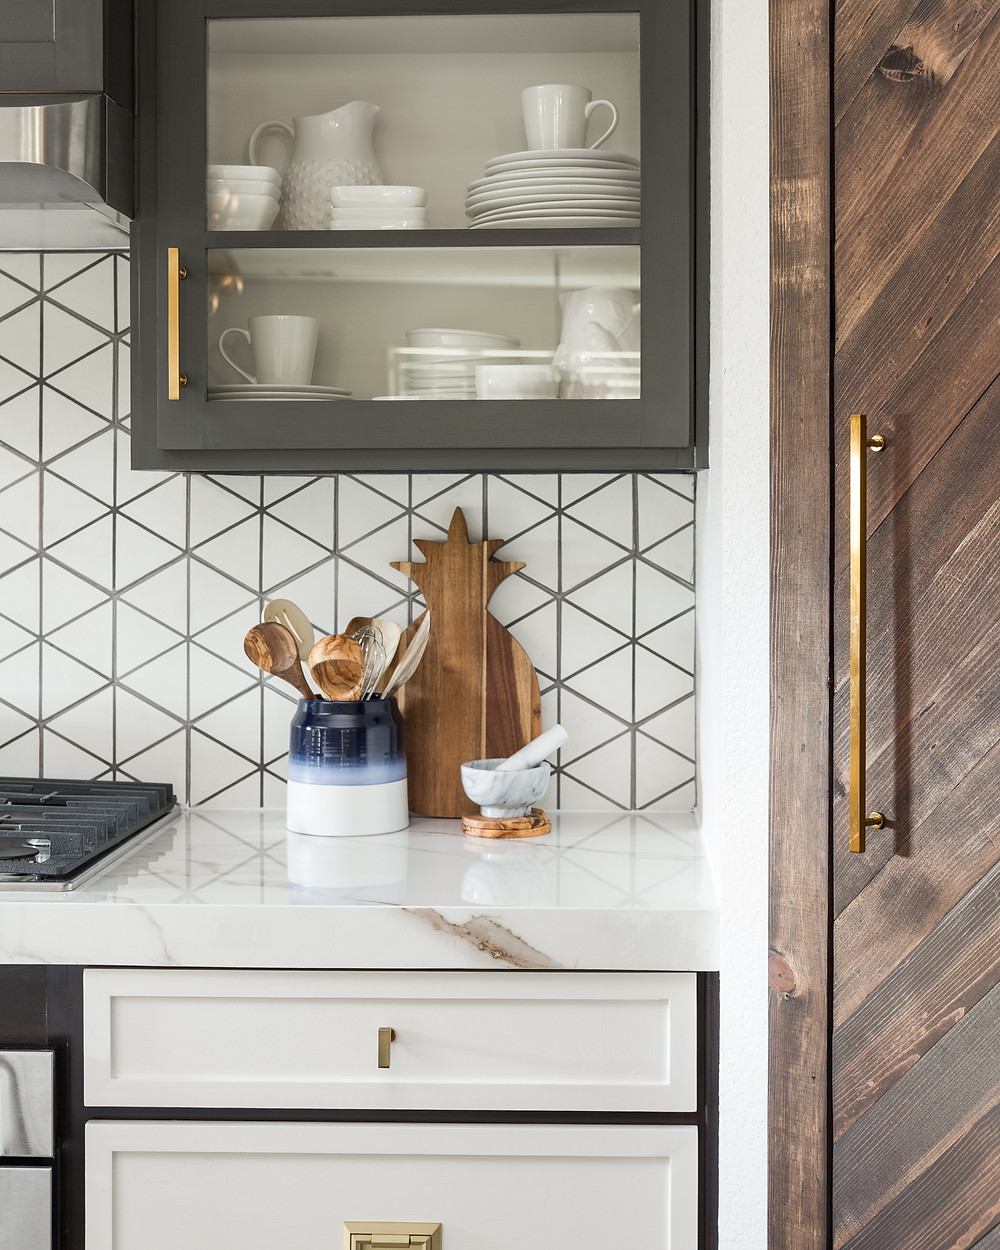 Kitchen Styling with white porcelain dishes